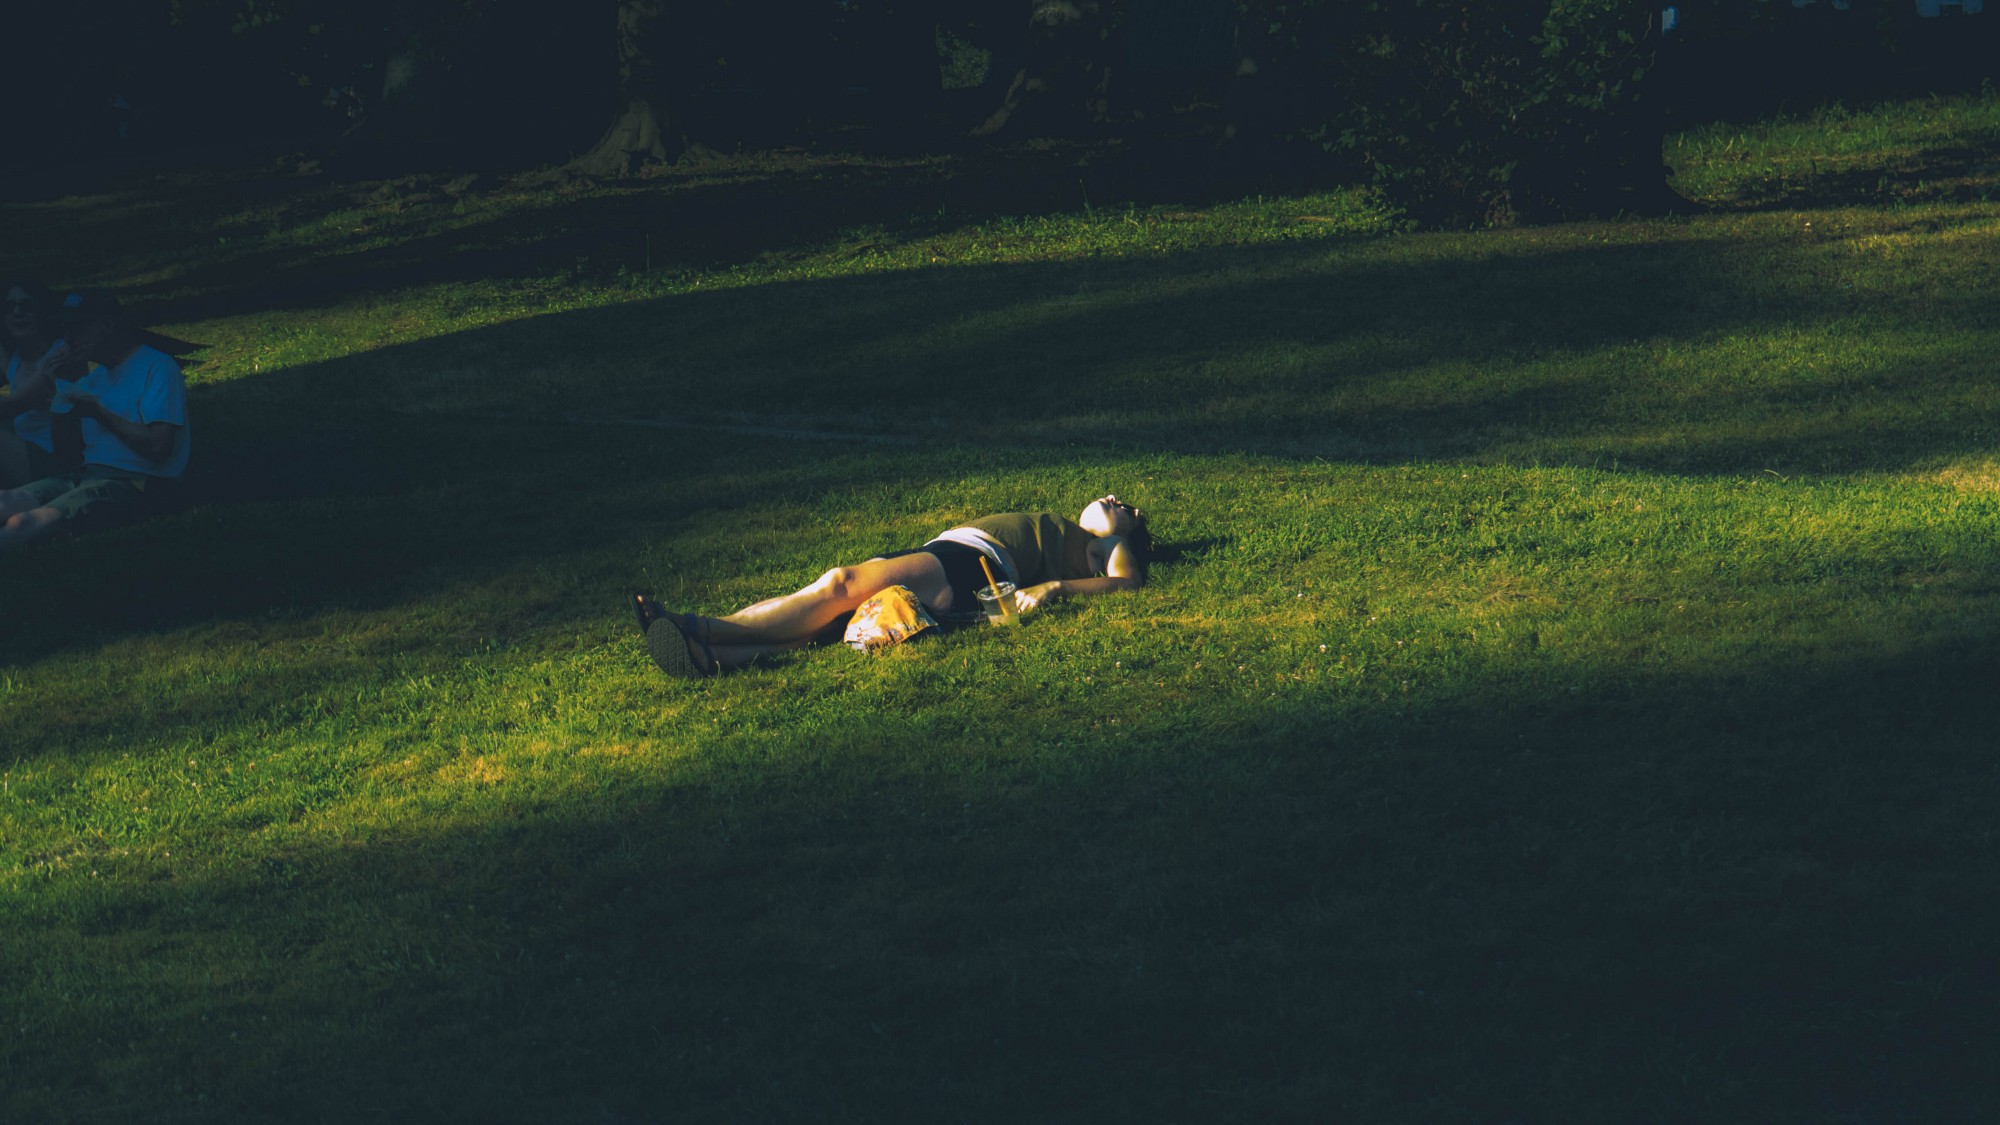 Person laying on their back on a grassy knoll.